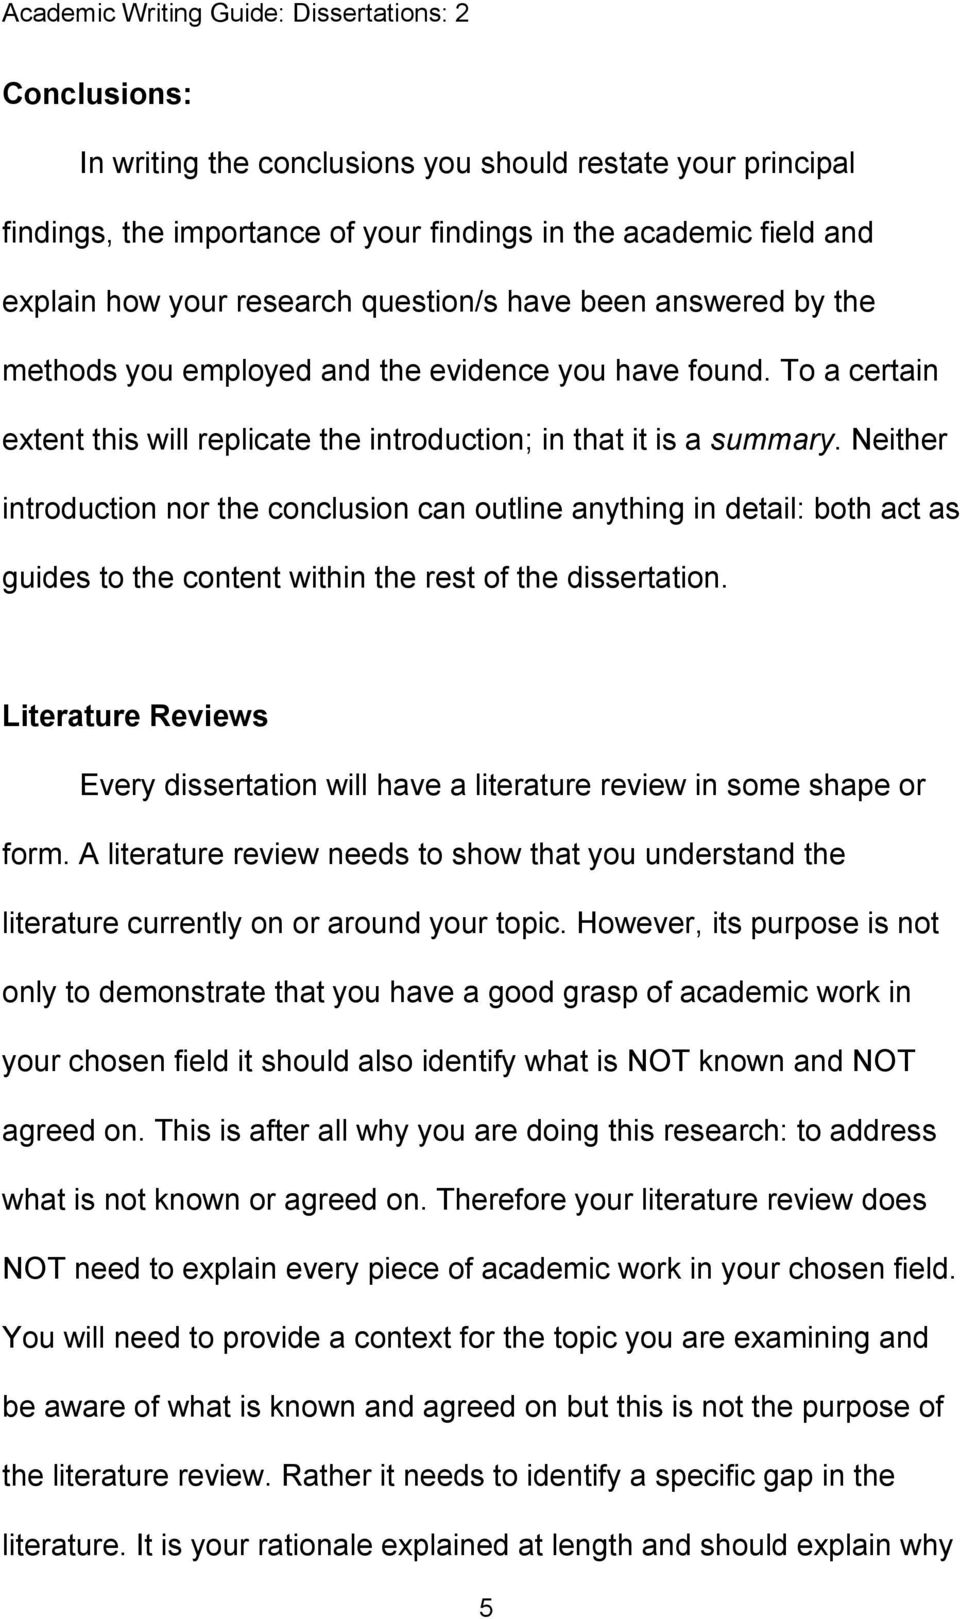 Cheap book review editor for hire gb